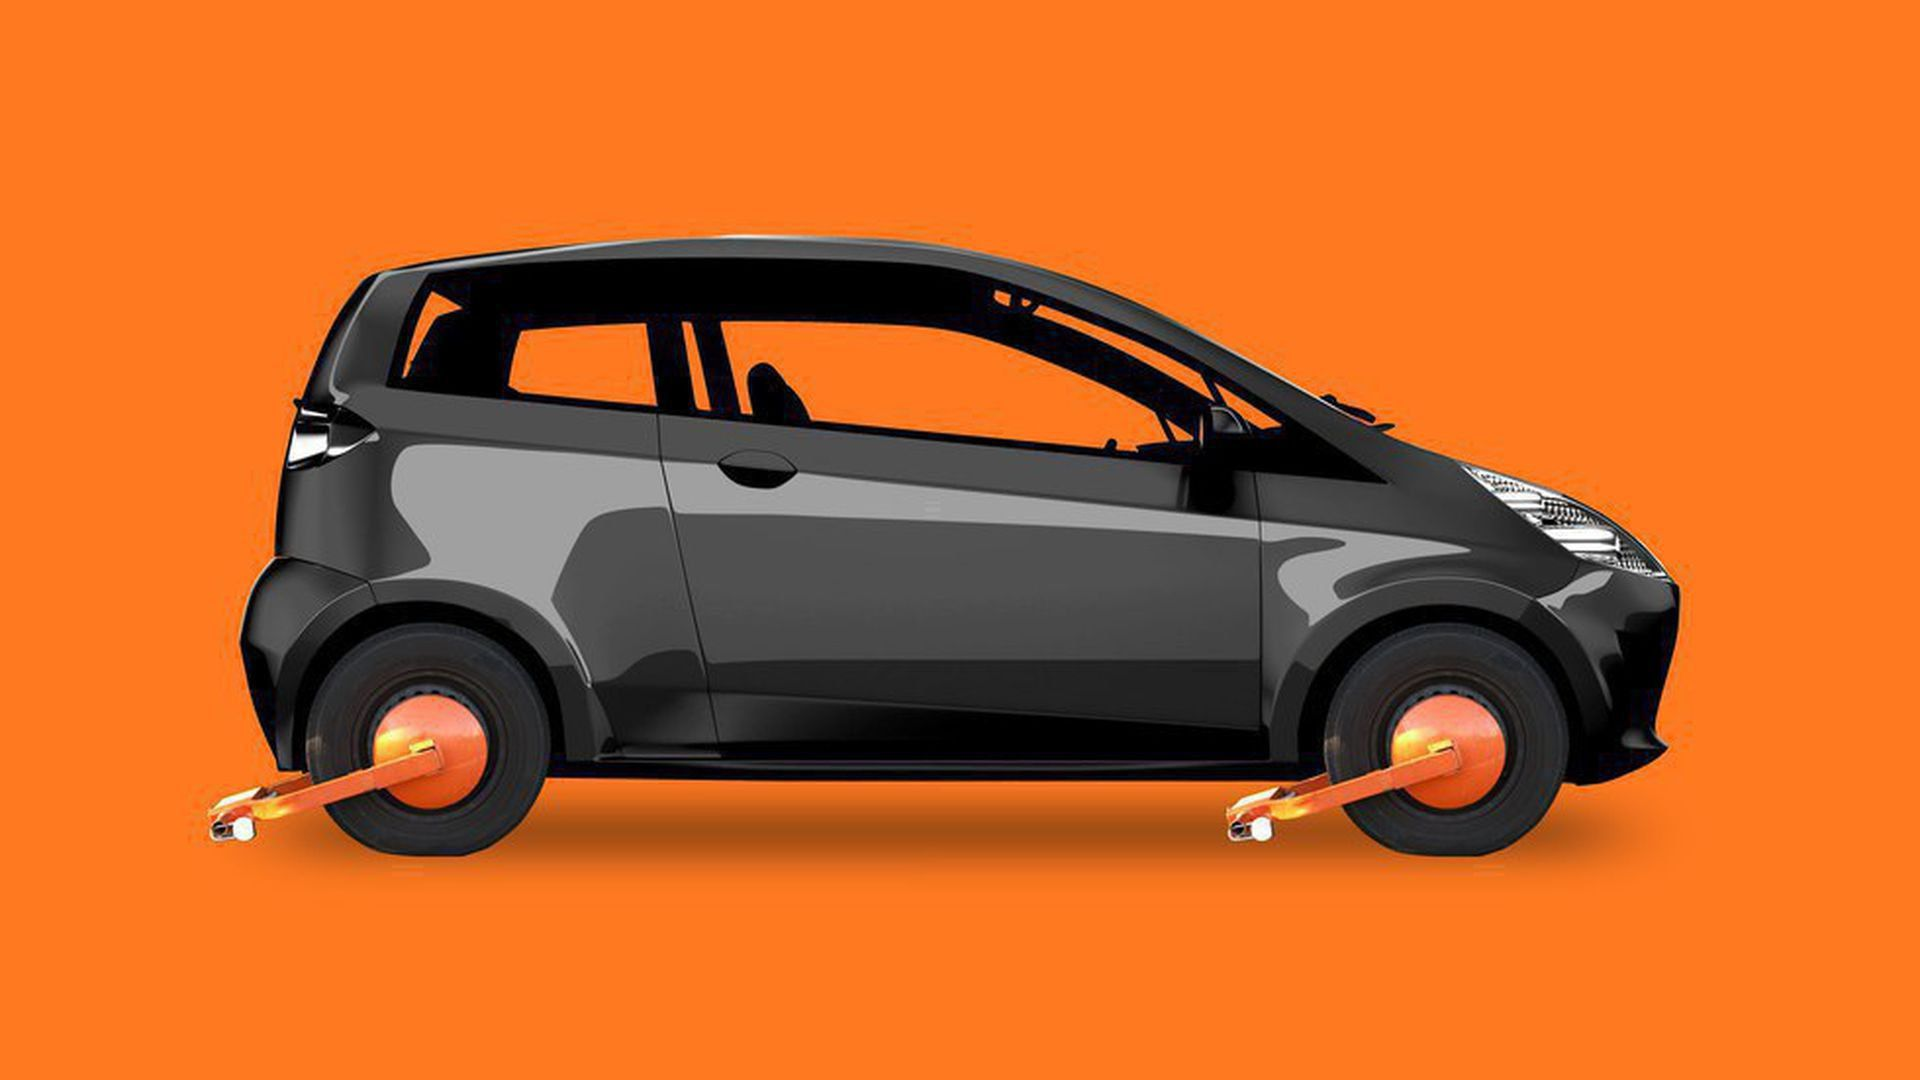 Illustration of car with locks on the wheels rendering it unusable